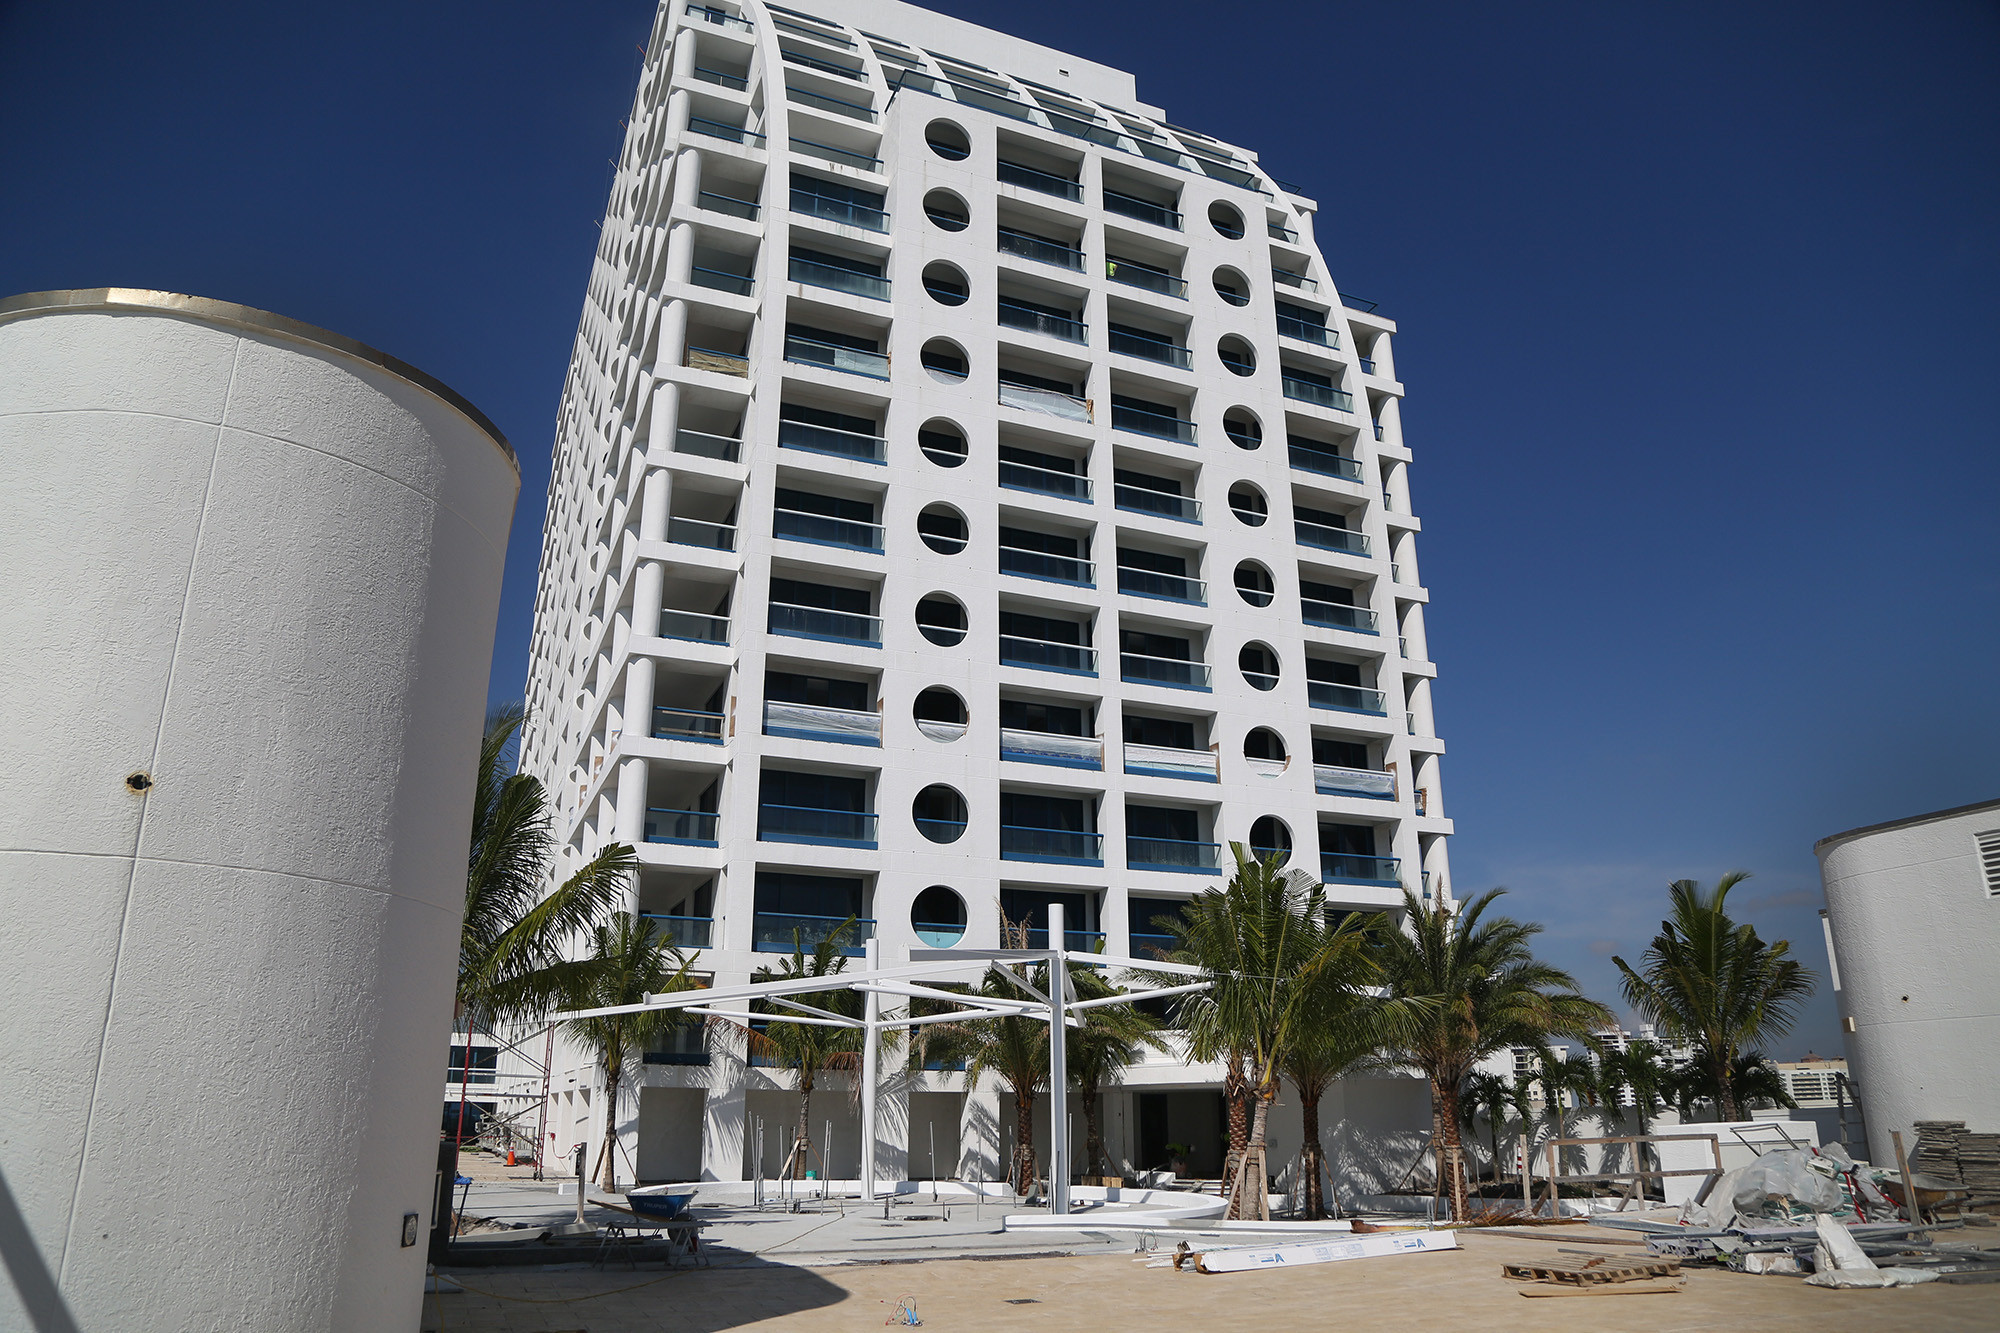 Conrad Fort Lauderdale Beach Resort to open in early 2016